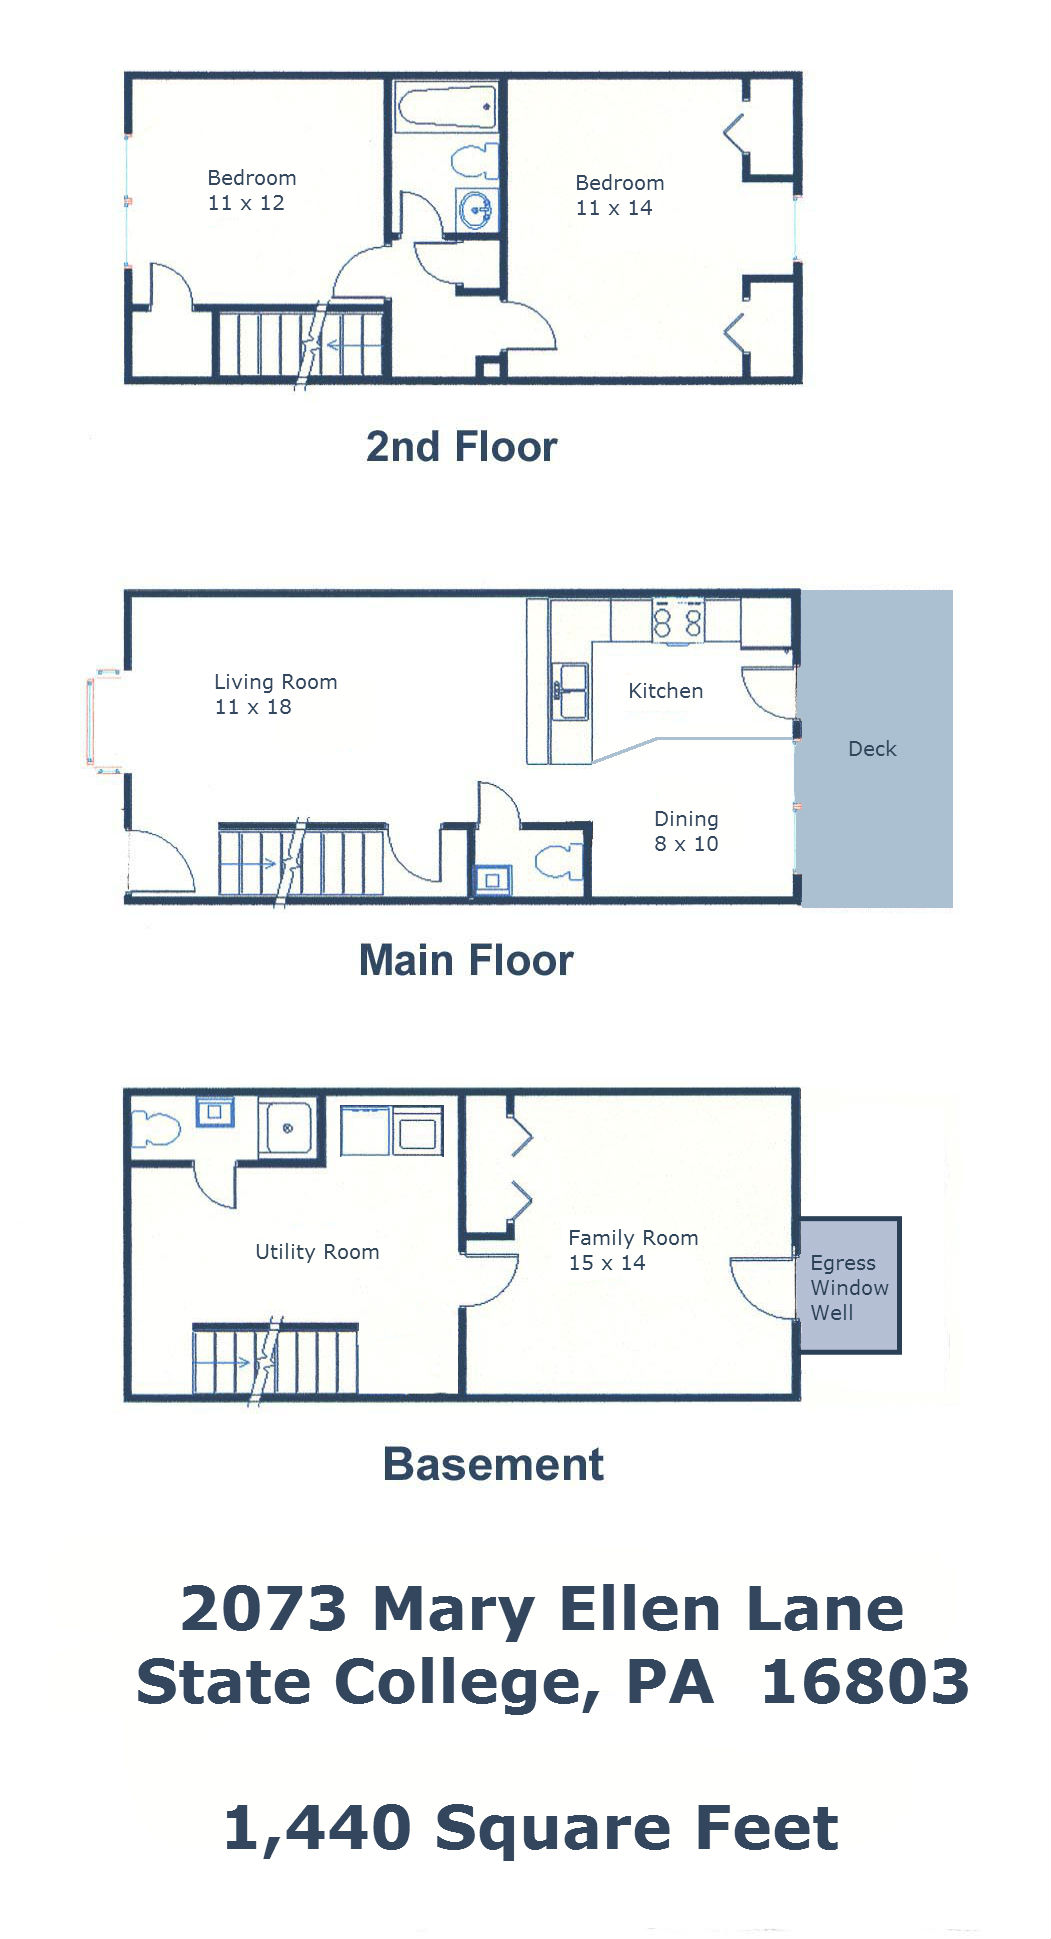 Floor plan of the 2 bedroom townhouse for rent at 2073 Mary Ellen Lane in State College PA